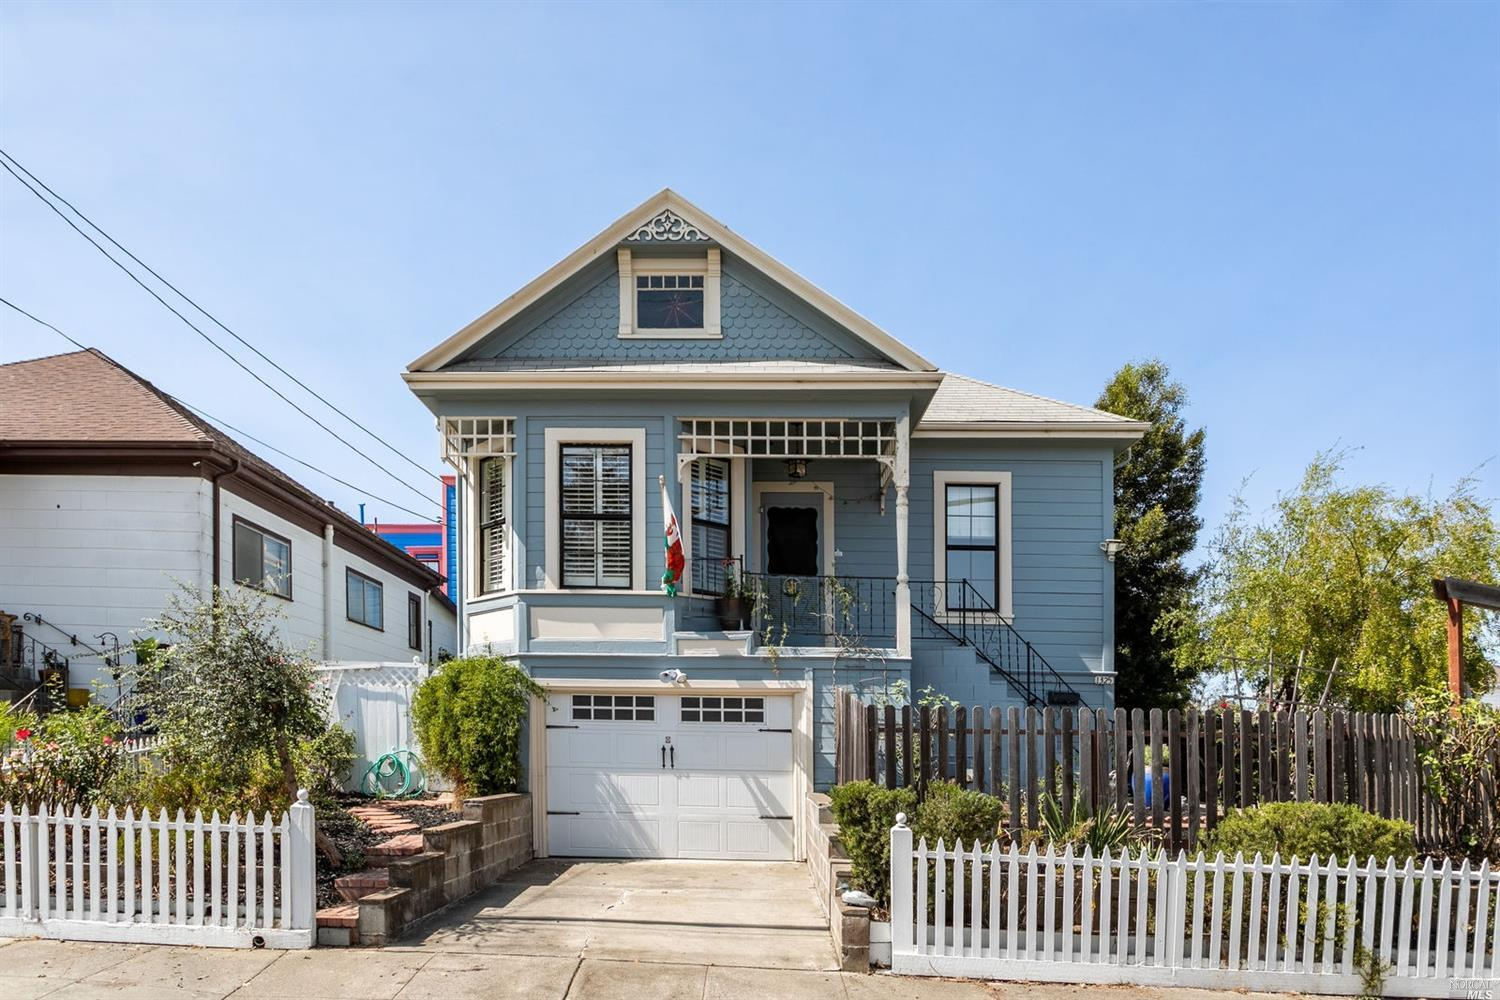 Queen Anne Victorian cottage near downtown Vallejo & Mare Island. Full of charming features, with a